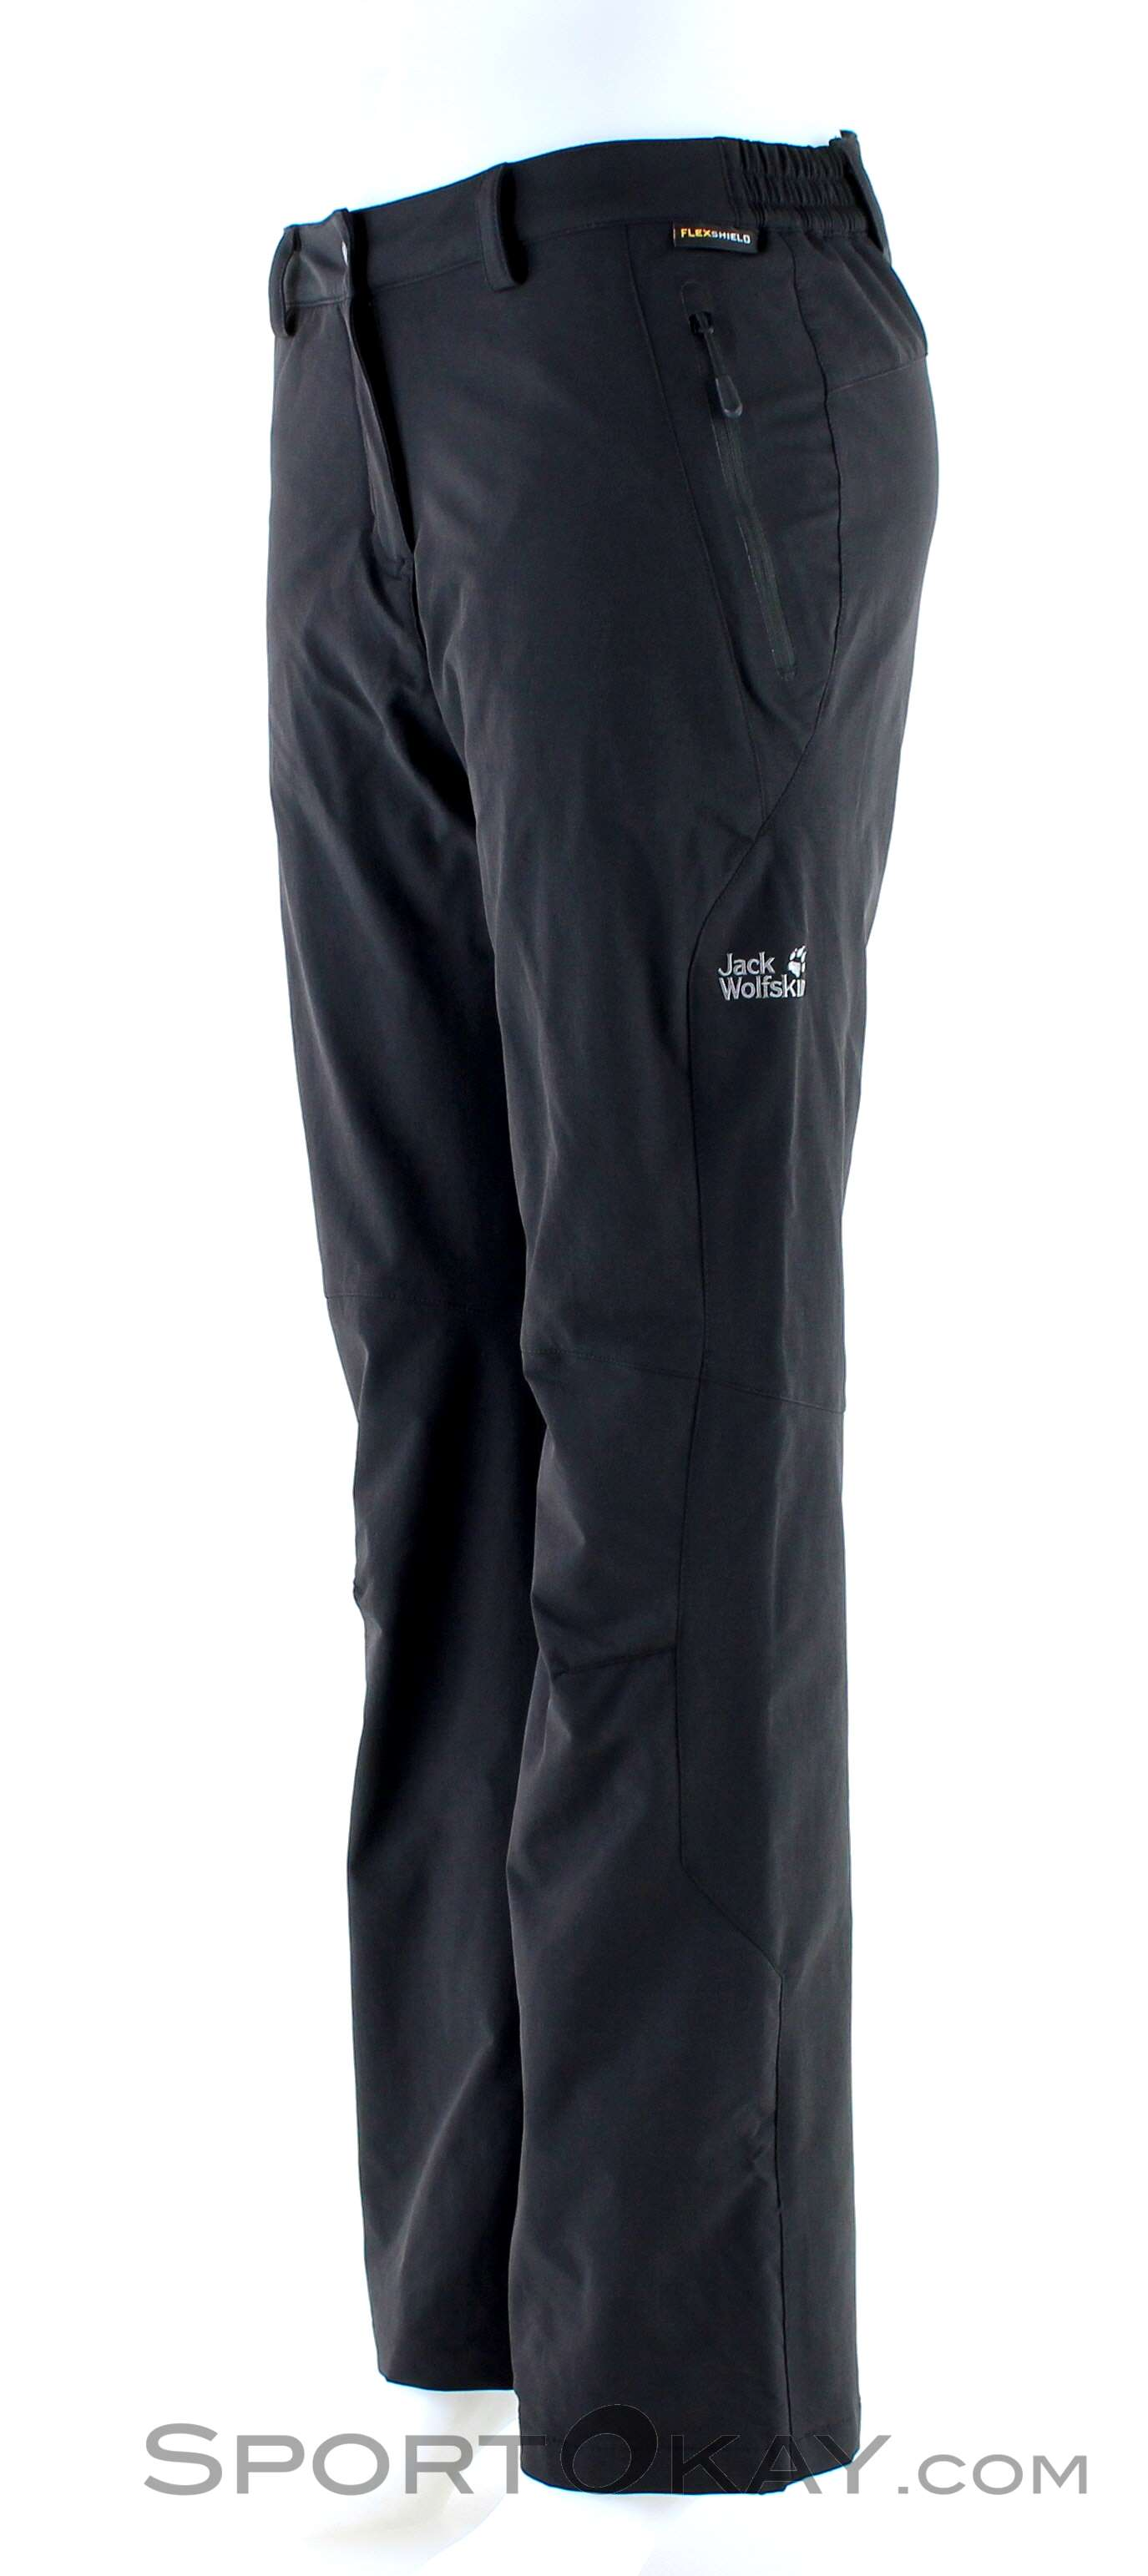 Jack Wolfskin Activate Winter Womens Outdoor Pants Pants